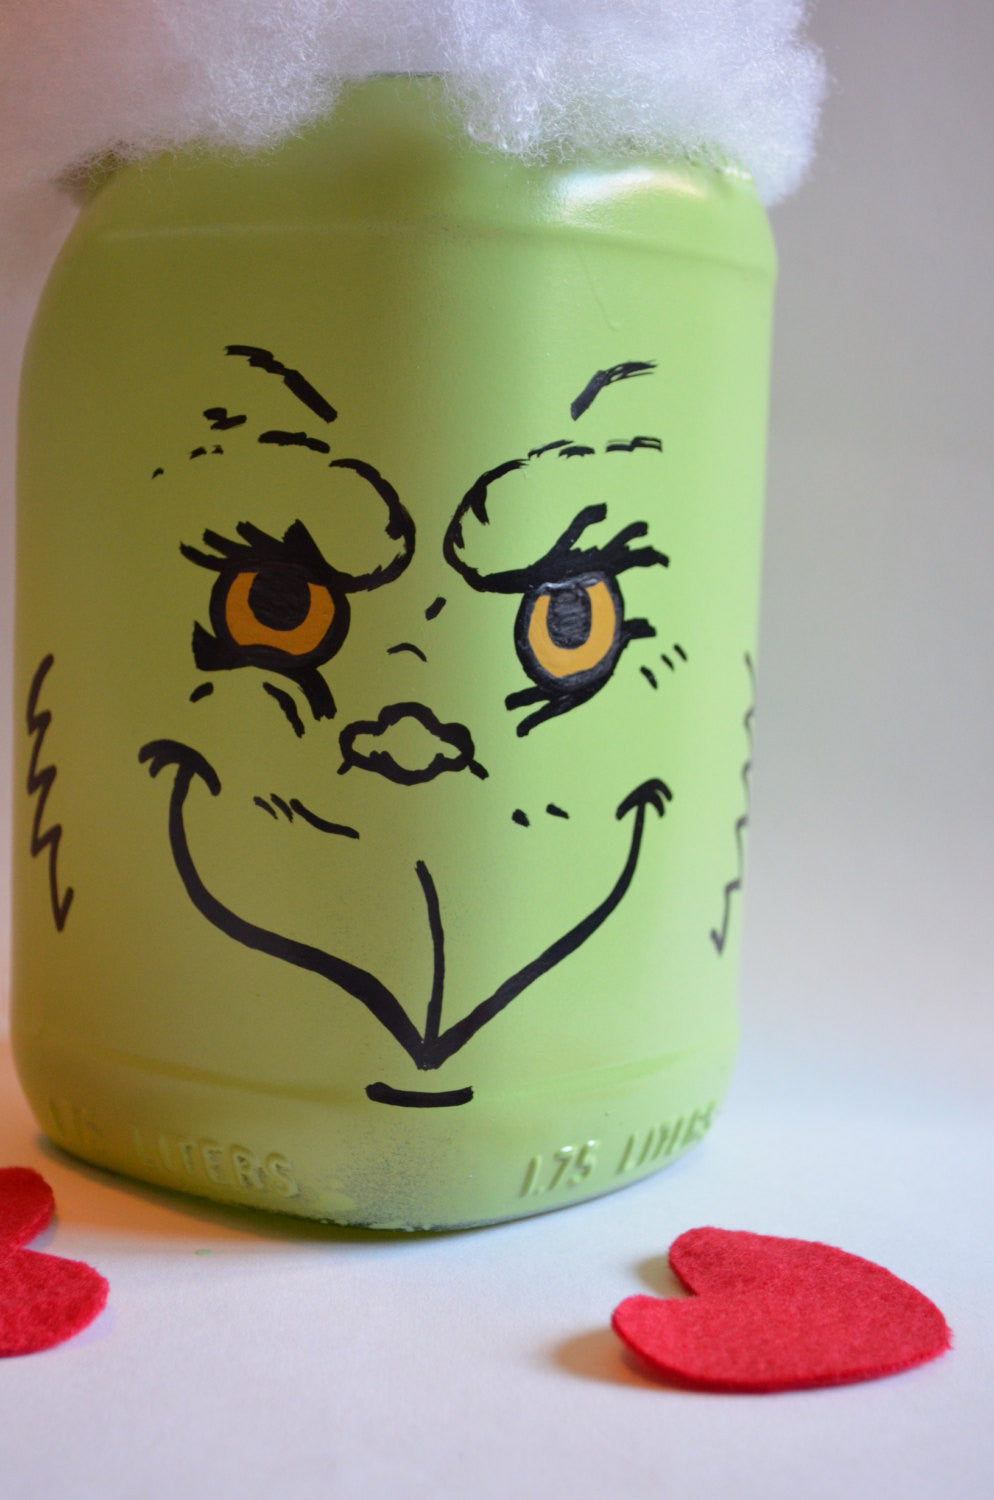 Dr Seuss Grinch inspired Hand painted Bottle Bourbon Bottle Decor Centerpiece